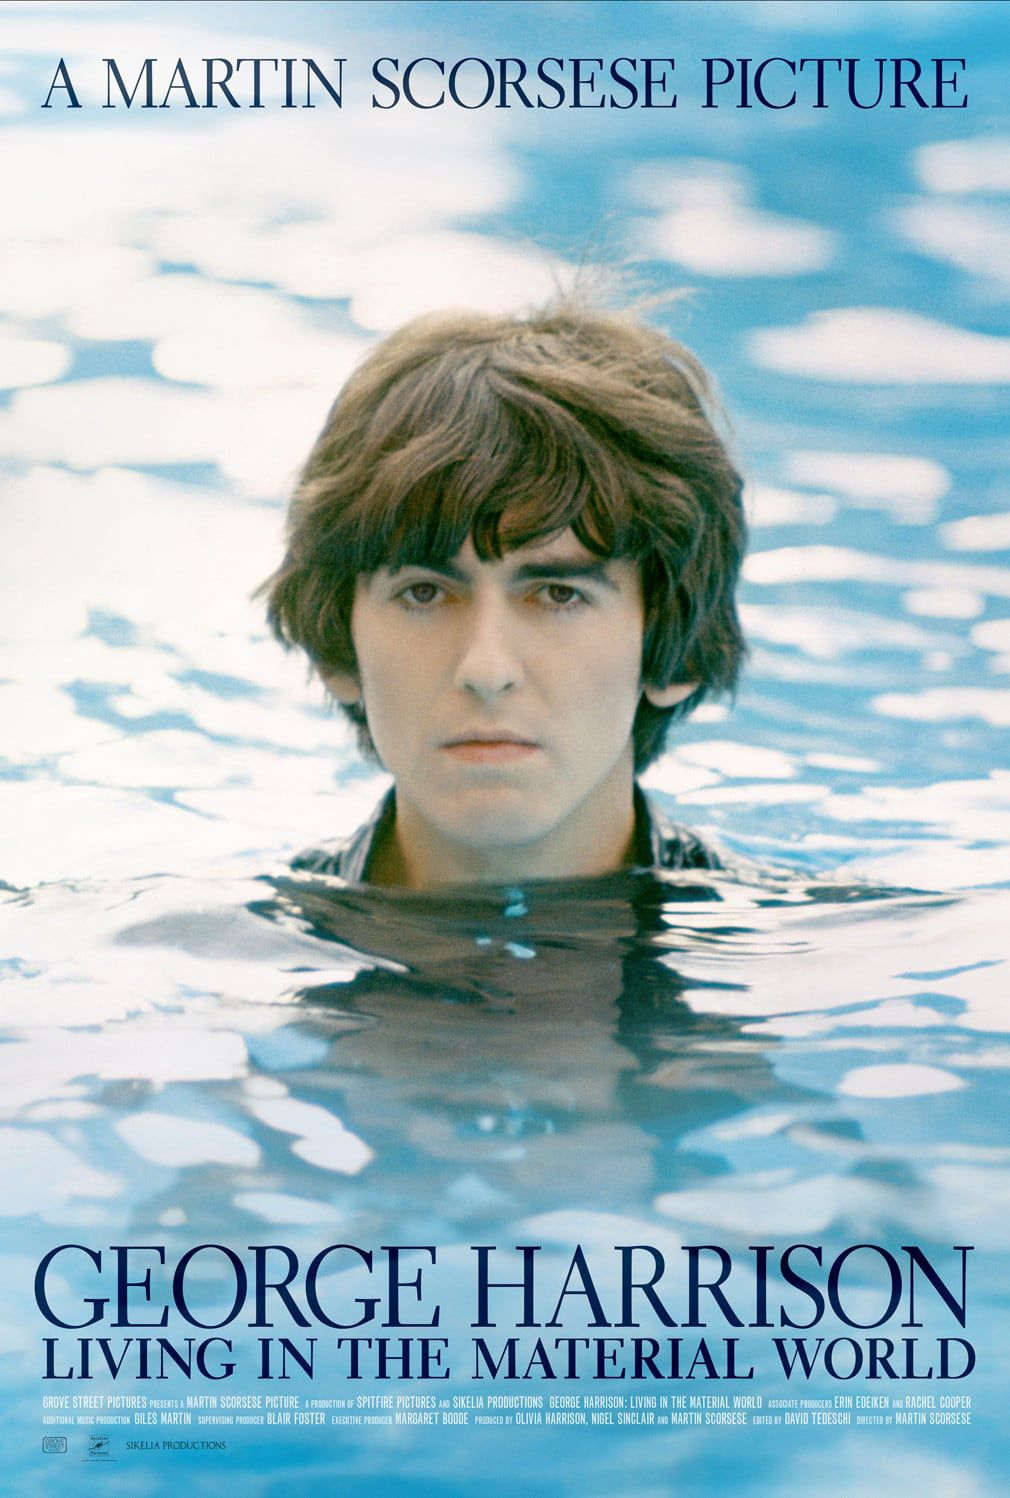 George Harrison: Living in the Material World - Documentaire (2011)